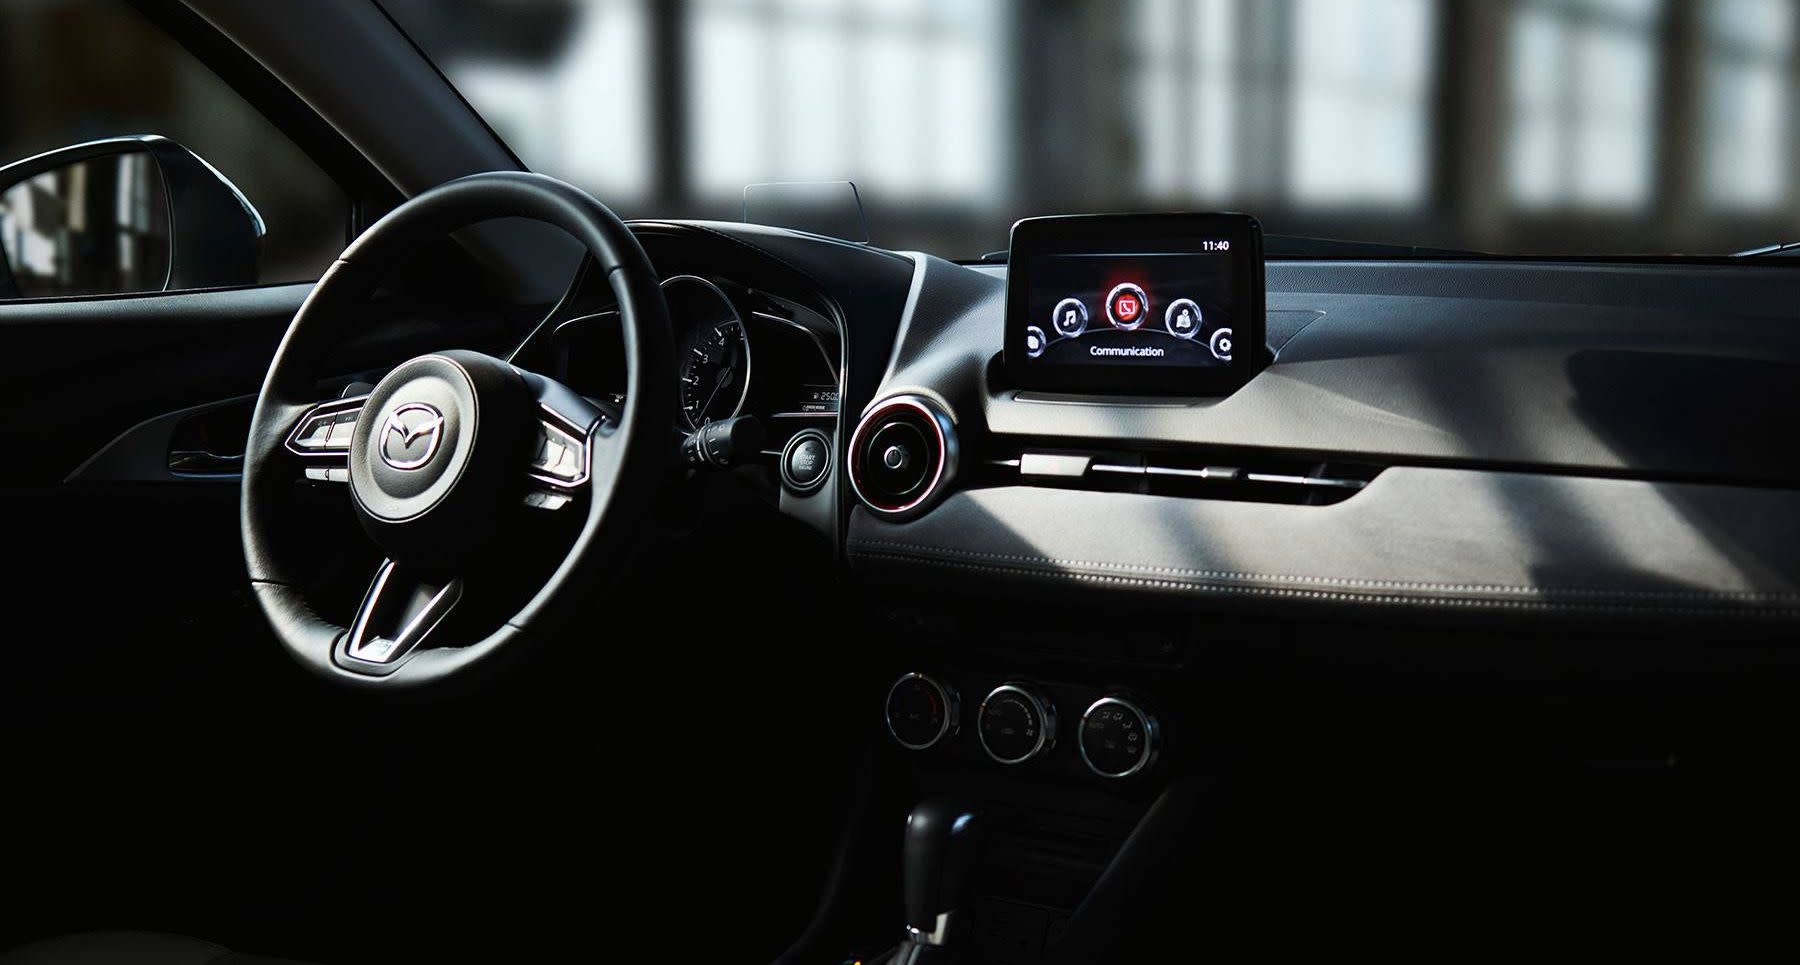 Enjoy the Drive in the 2019 Mazda CX-3